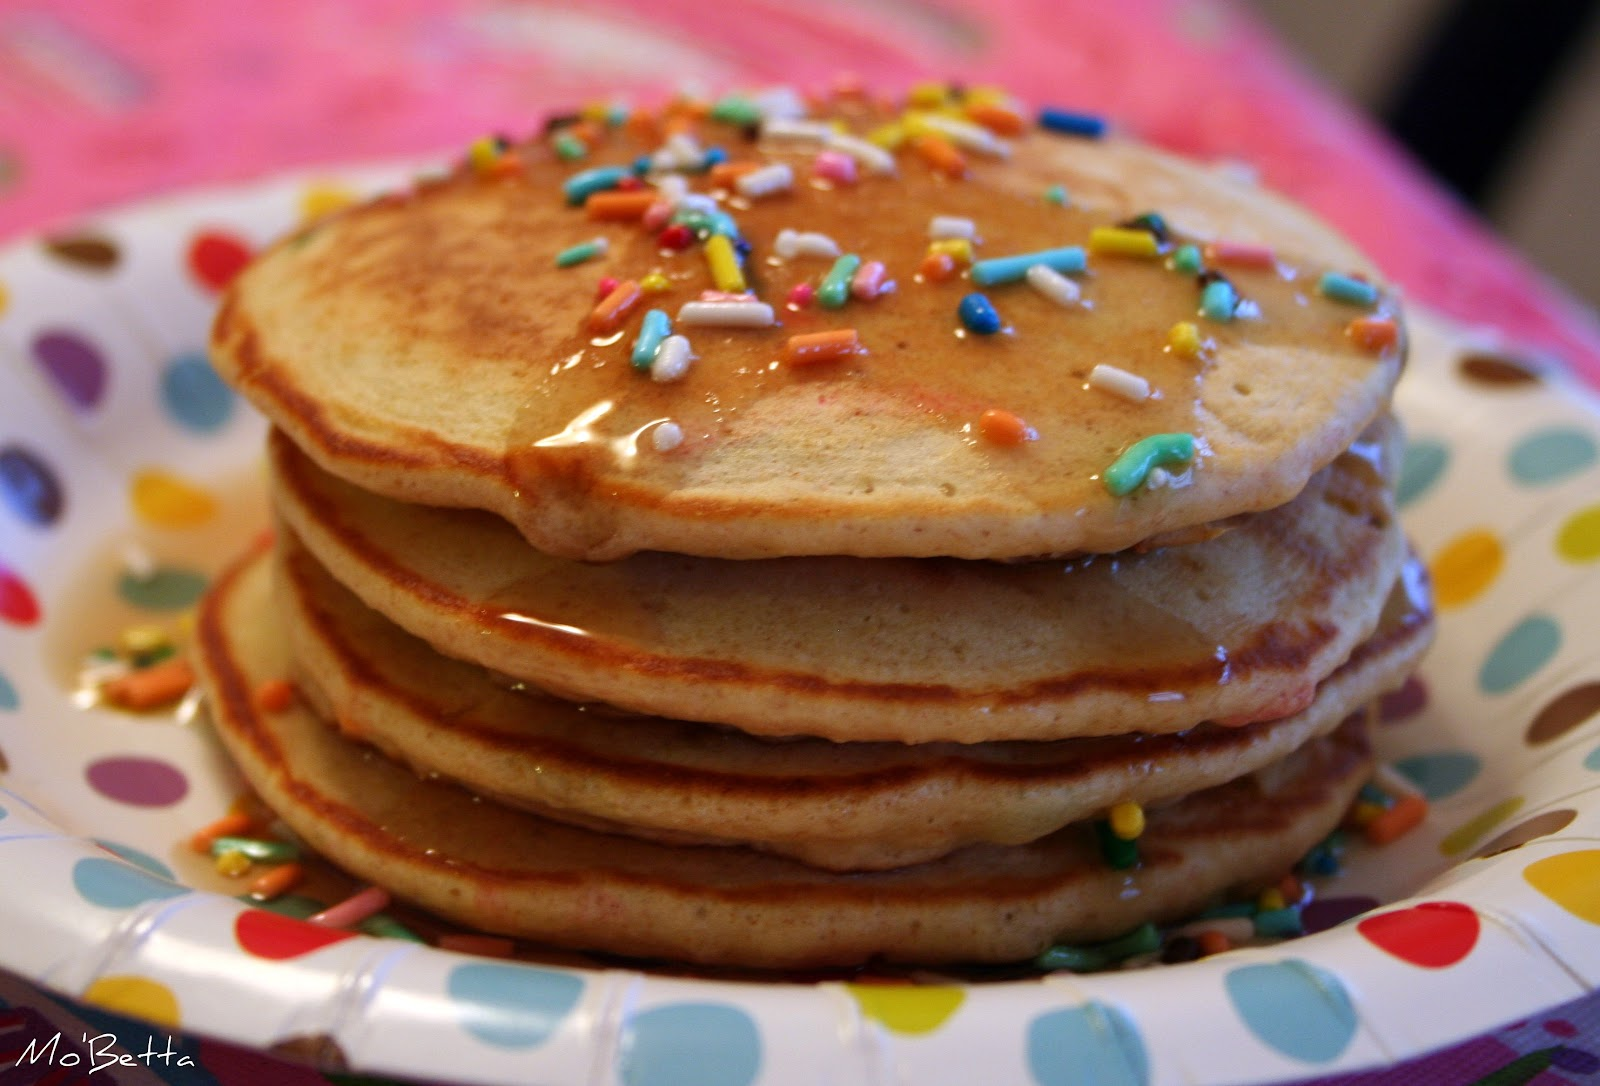 Makin' it Mo' Betta: Cake Batter Pancakes